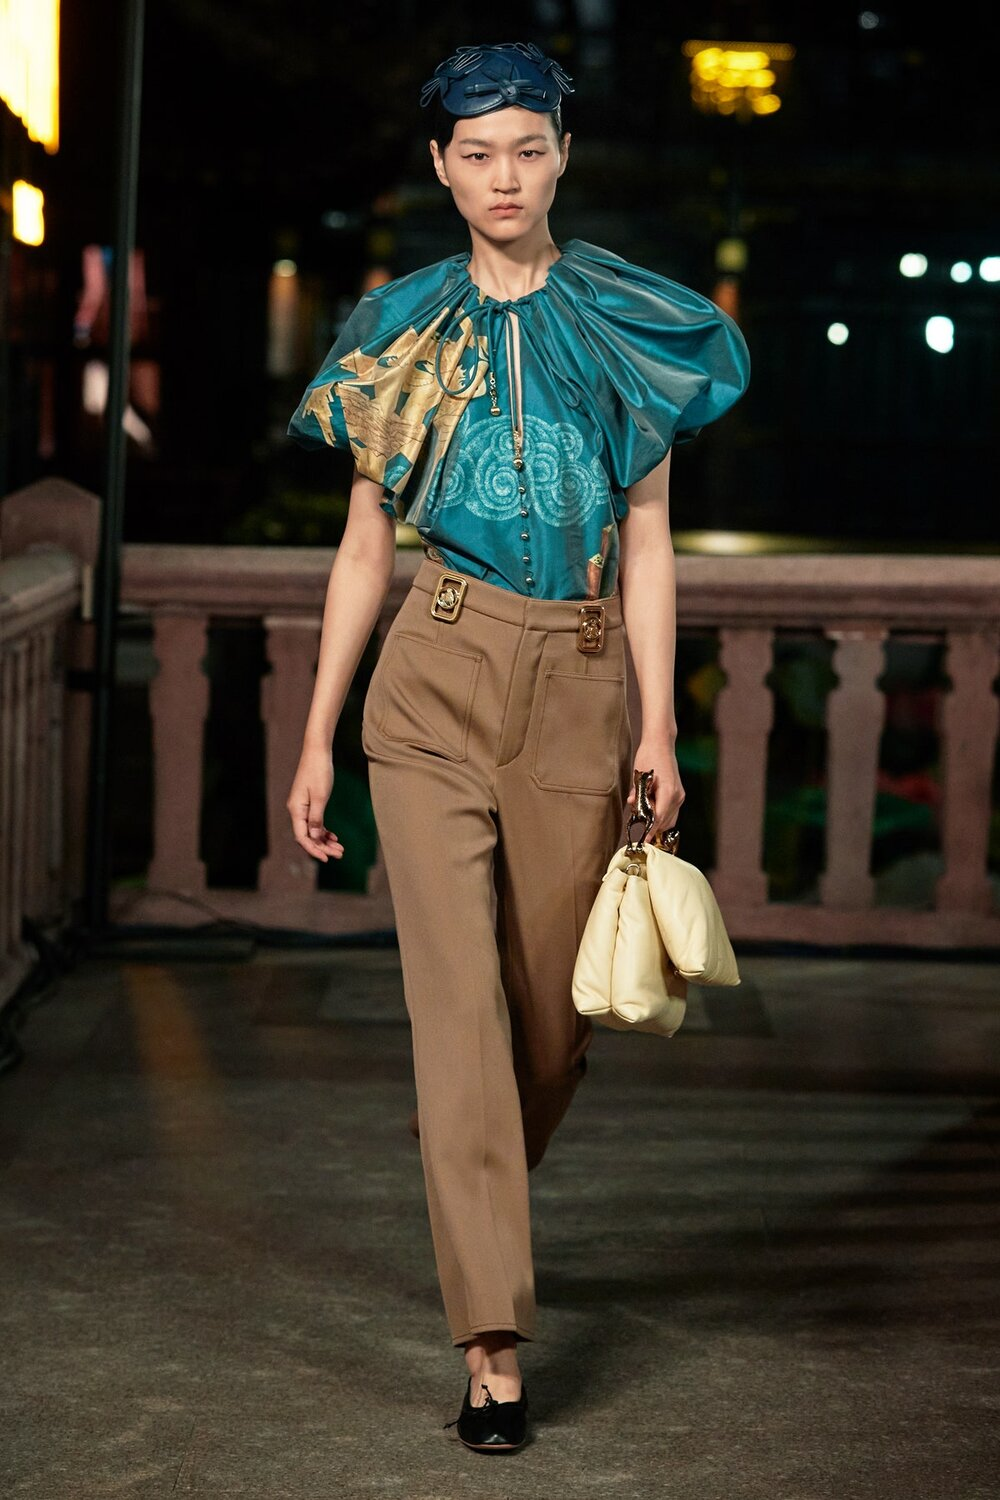 A look from Lanvin's S/S 2021 show in Shanghai